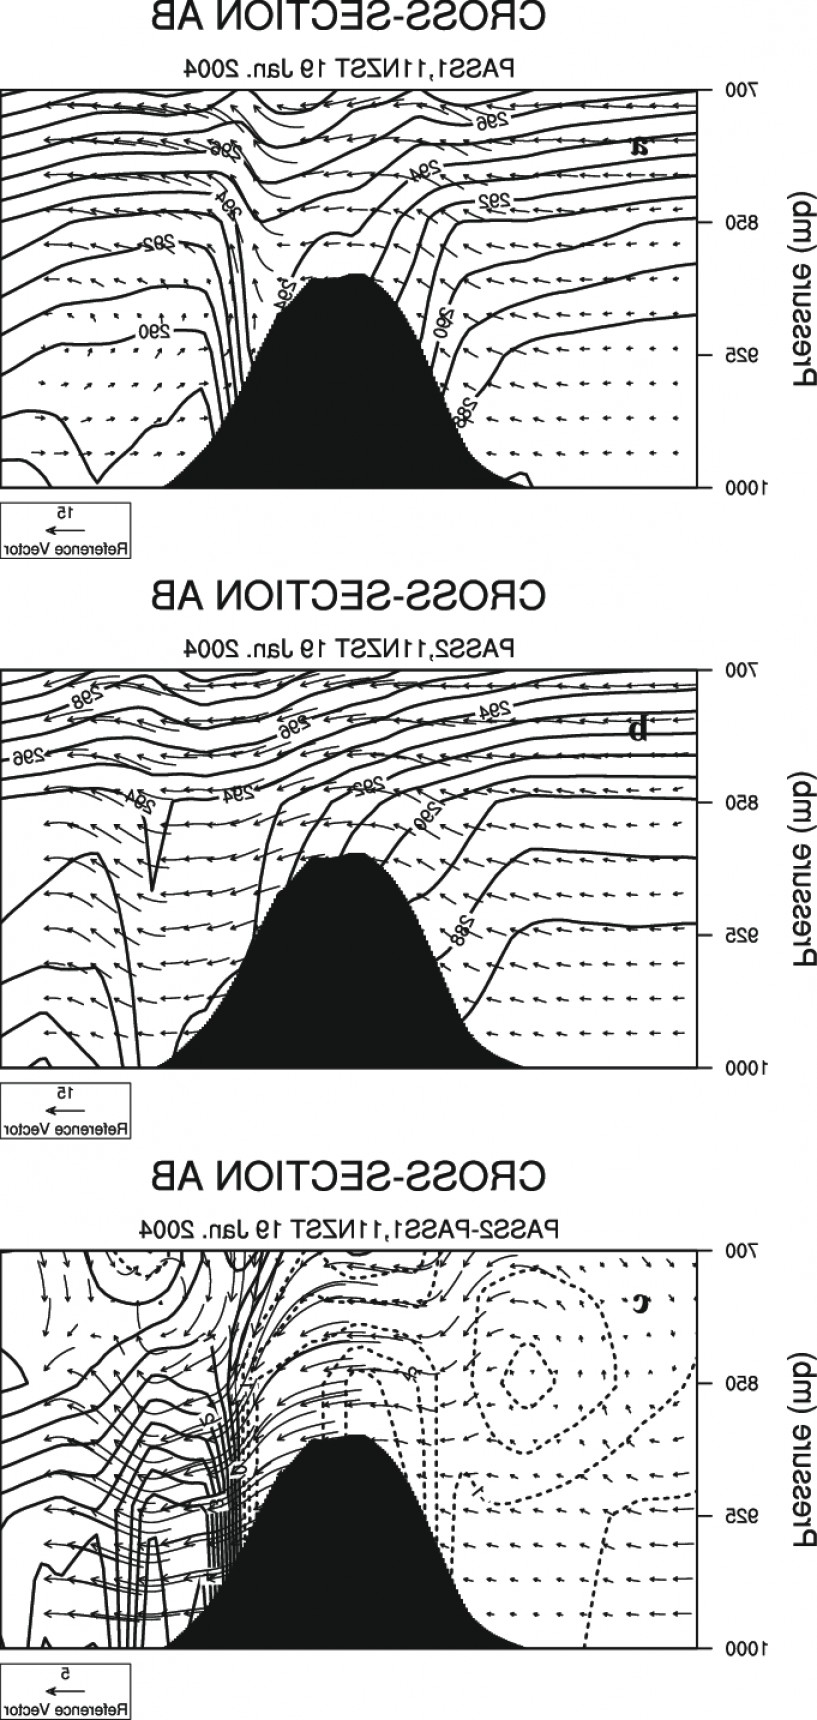 Parallel Vectors K: Simulated Wind Vectors M S And Potential Temperature K Along The Transect Acrossfig